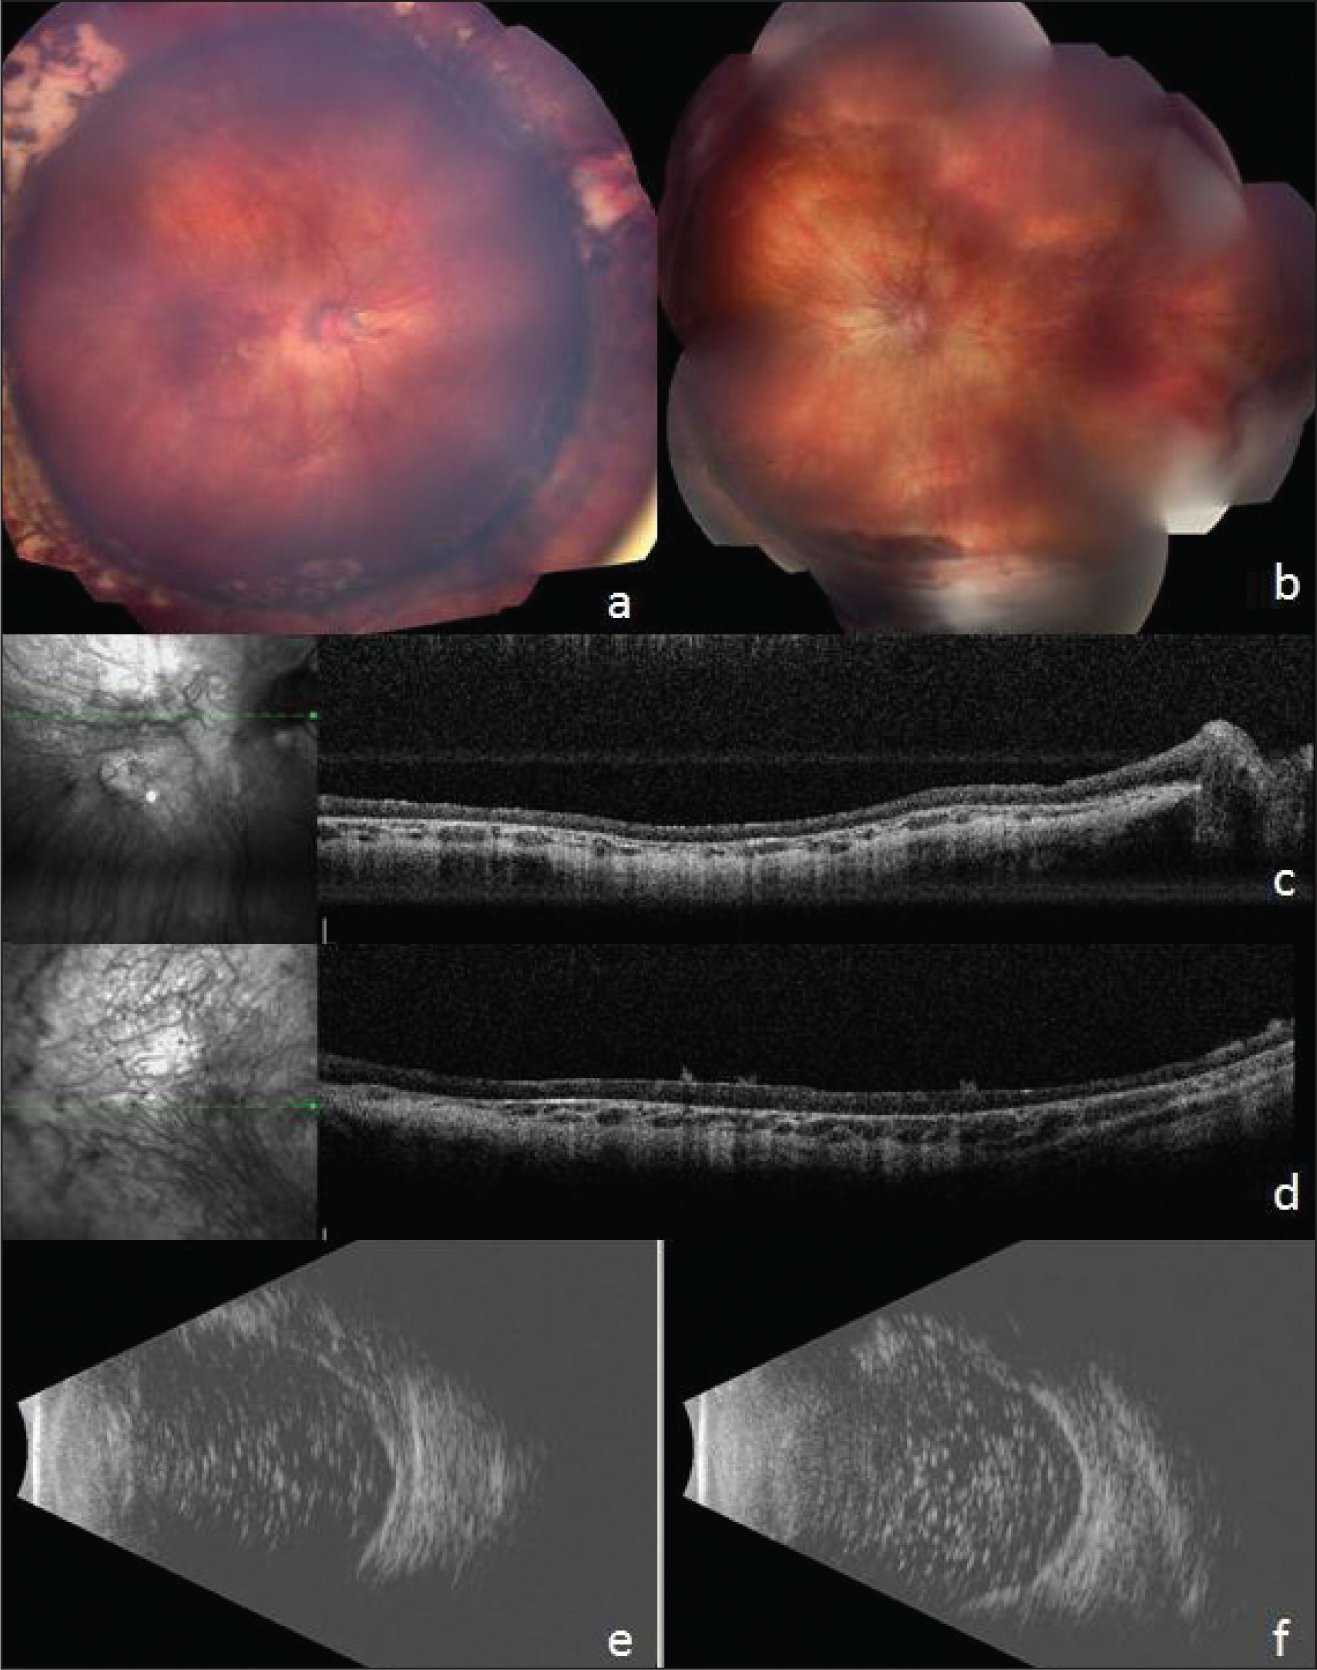 Fundus photographs, spectral-domain optical coherence tomography, and echography at 5 years of age. Color fundus photographs of the (A) right and (B) left eyes conveying sharp discs, slightly tortuous retinal vessels, diffuse atrophy of the retinal pigment epithelium, normal choroidal vasculature appearance, and attached retina with circumferential scleral buckles. Spectral-domain optical coherence tomography (Heidelberg Engineering, Heidelberg Germany) images of the (C) right and (D) left eye showing significant retinal thinning precluding clear identification of the retinal layers; there is loss of foveal contour and choroidal thinning. Echography of the left eye (E) superiorly and (F) inferiorly, demonstrating attached retina and residual silicone oil.